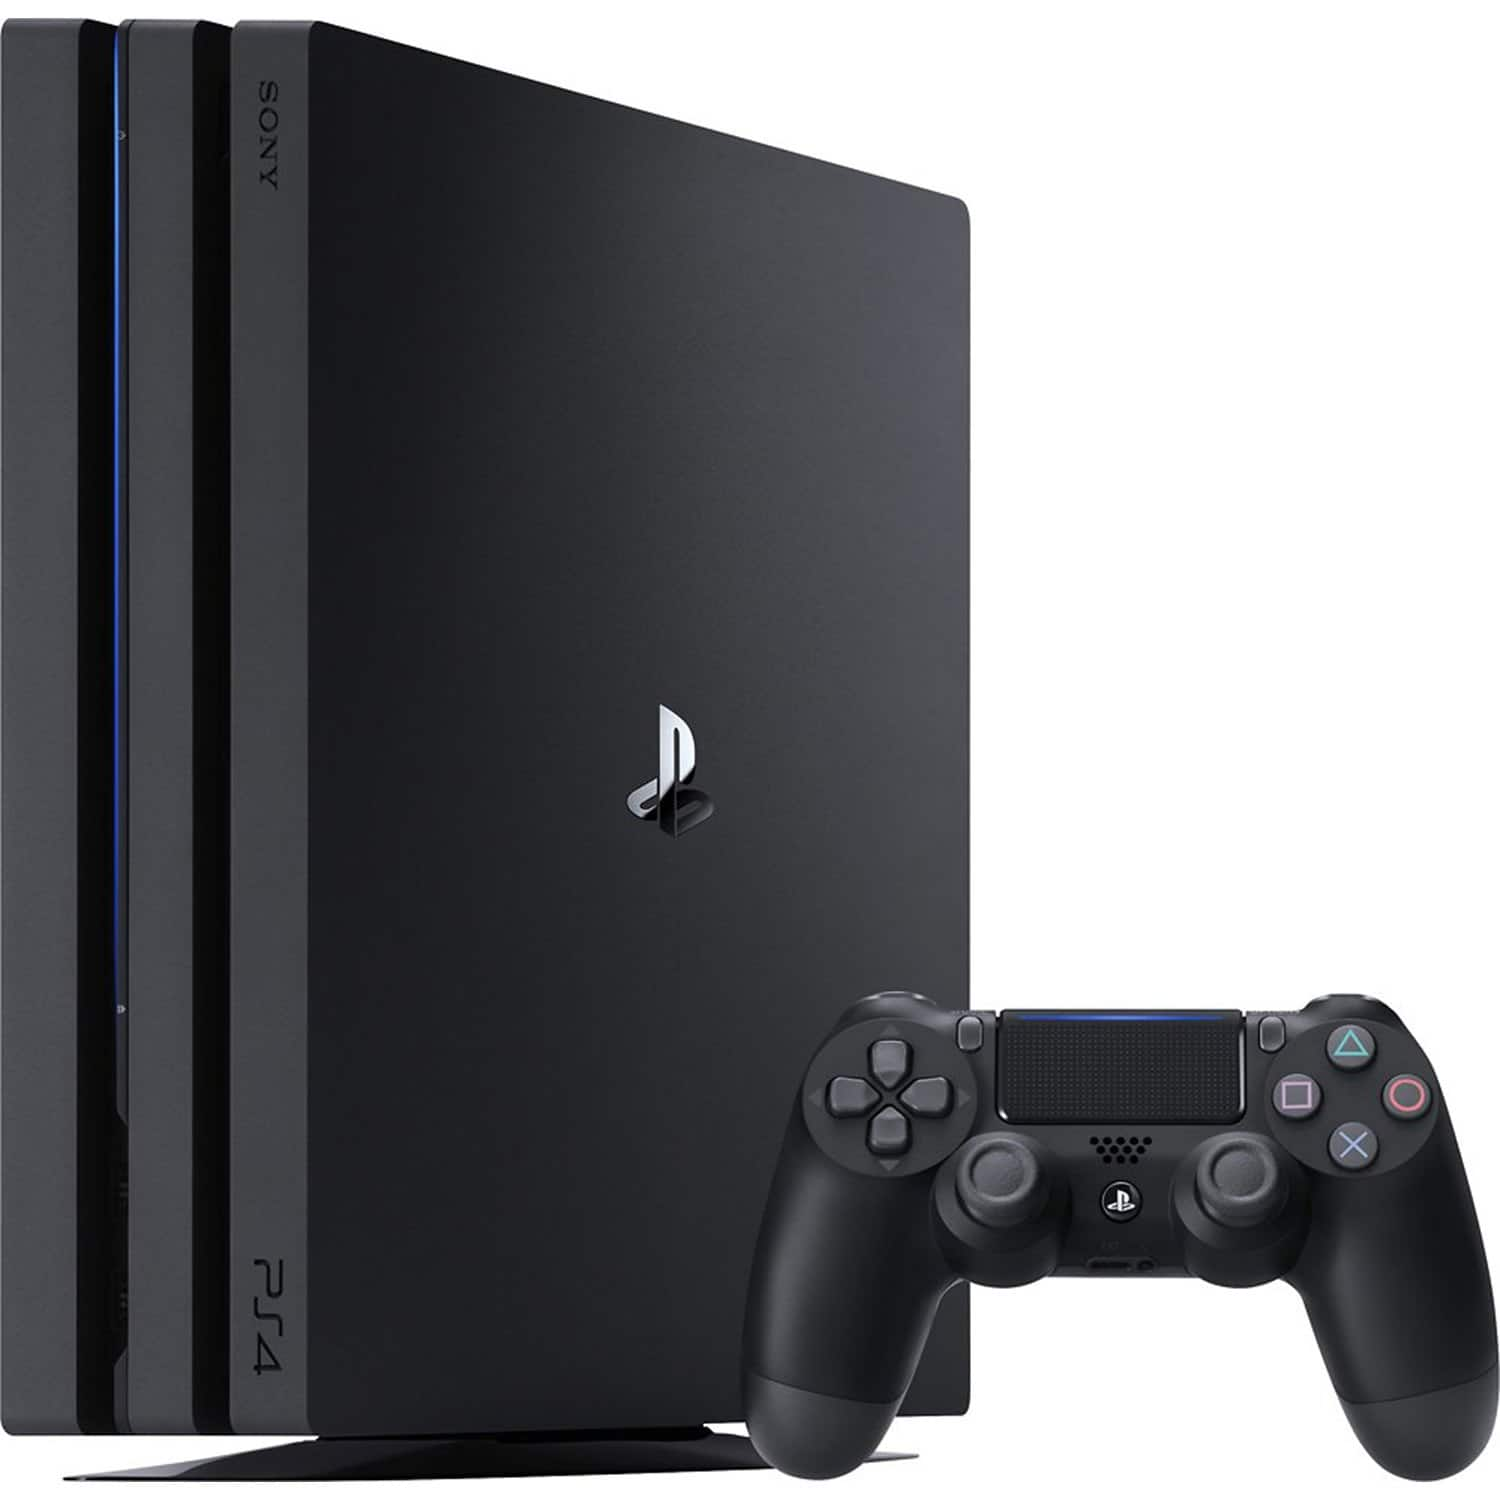 Sony Playstation 4 Pro 1TB Gaming Console - $359 + Free Shipping